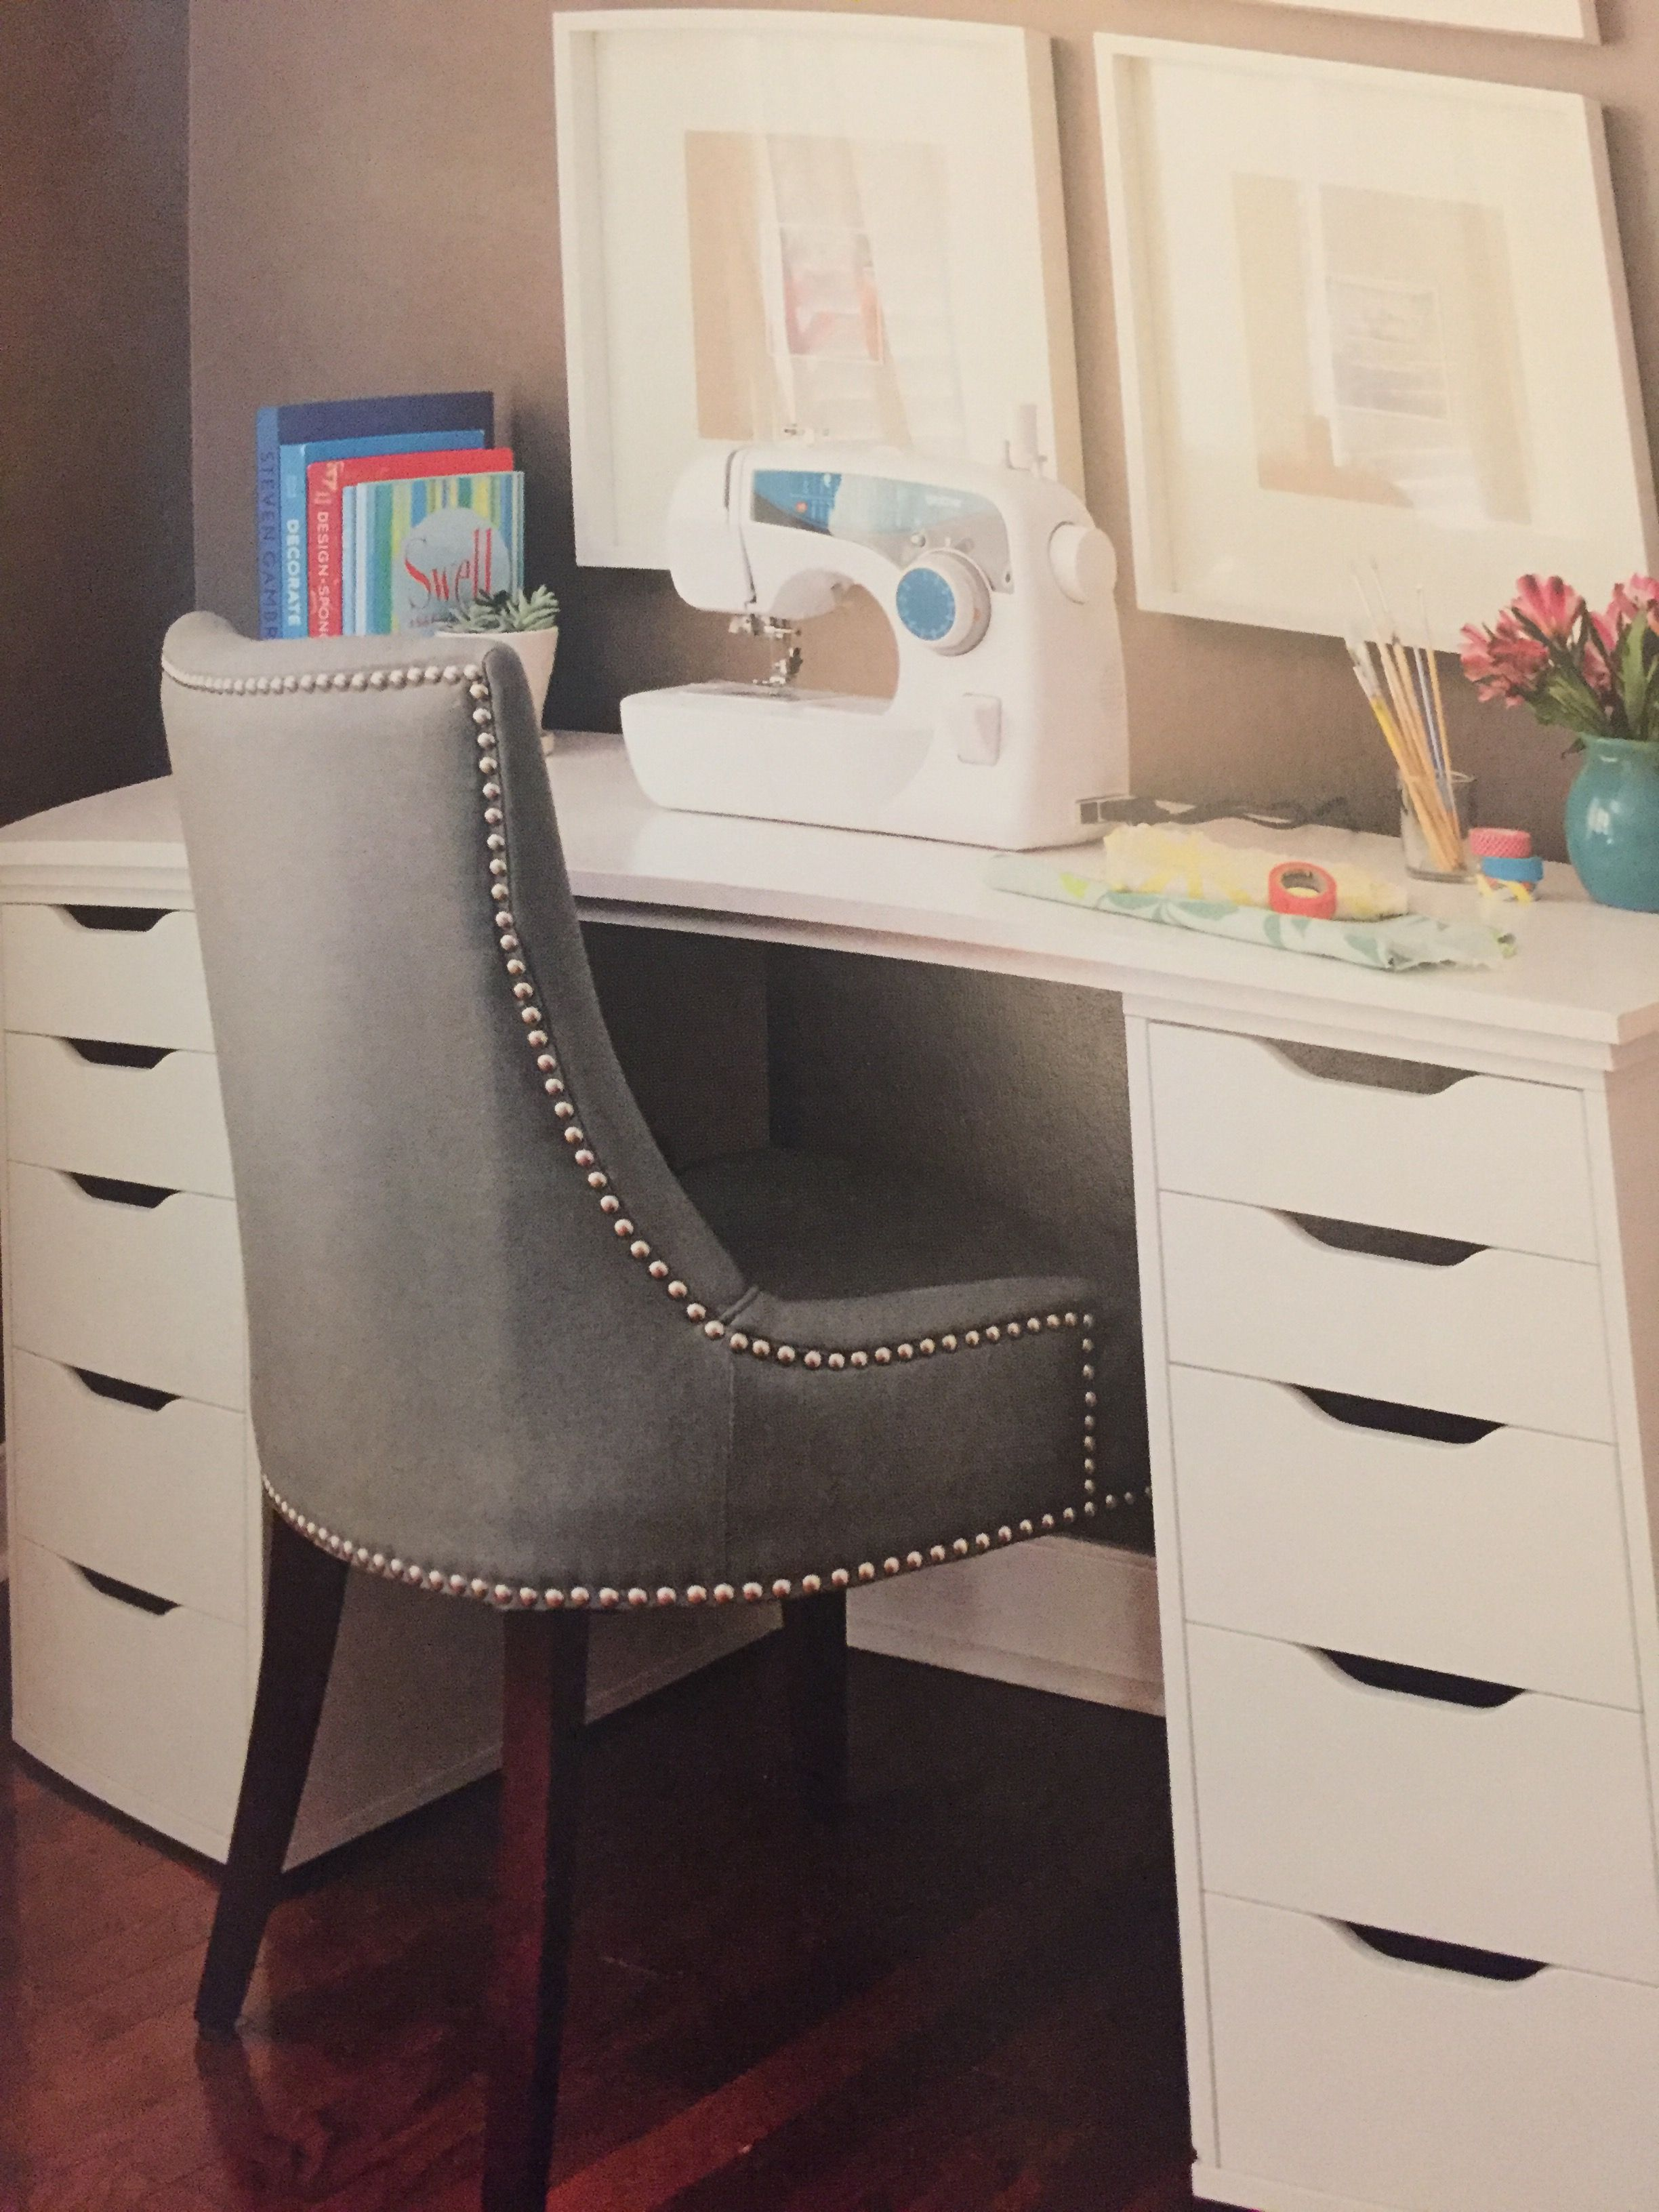 Yhl lovable livable home ikea alex drawers turned craft desk